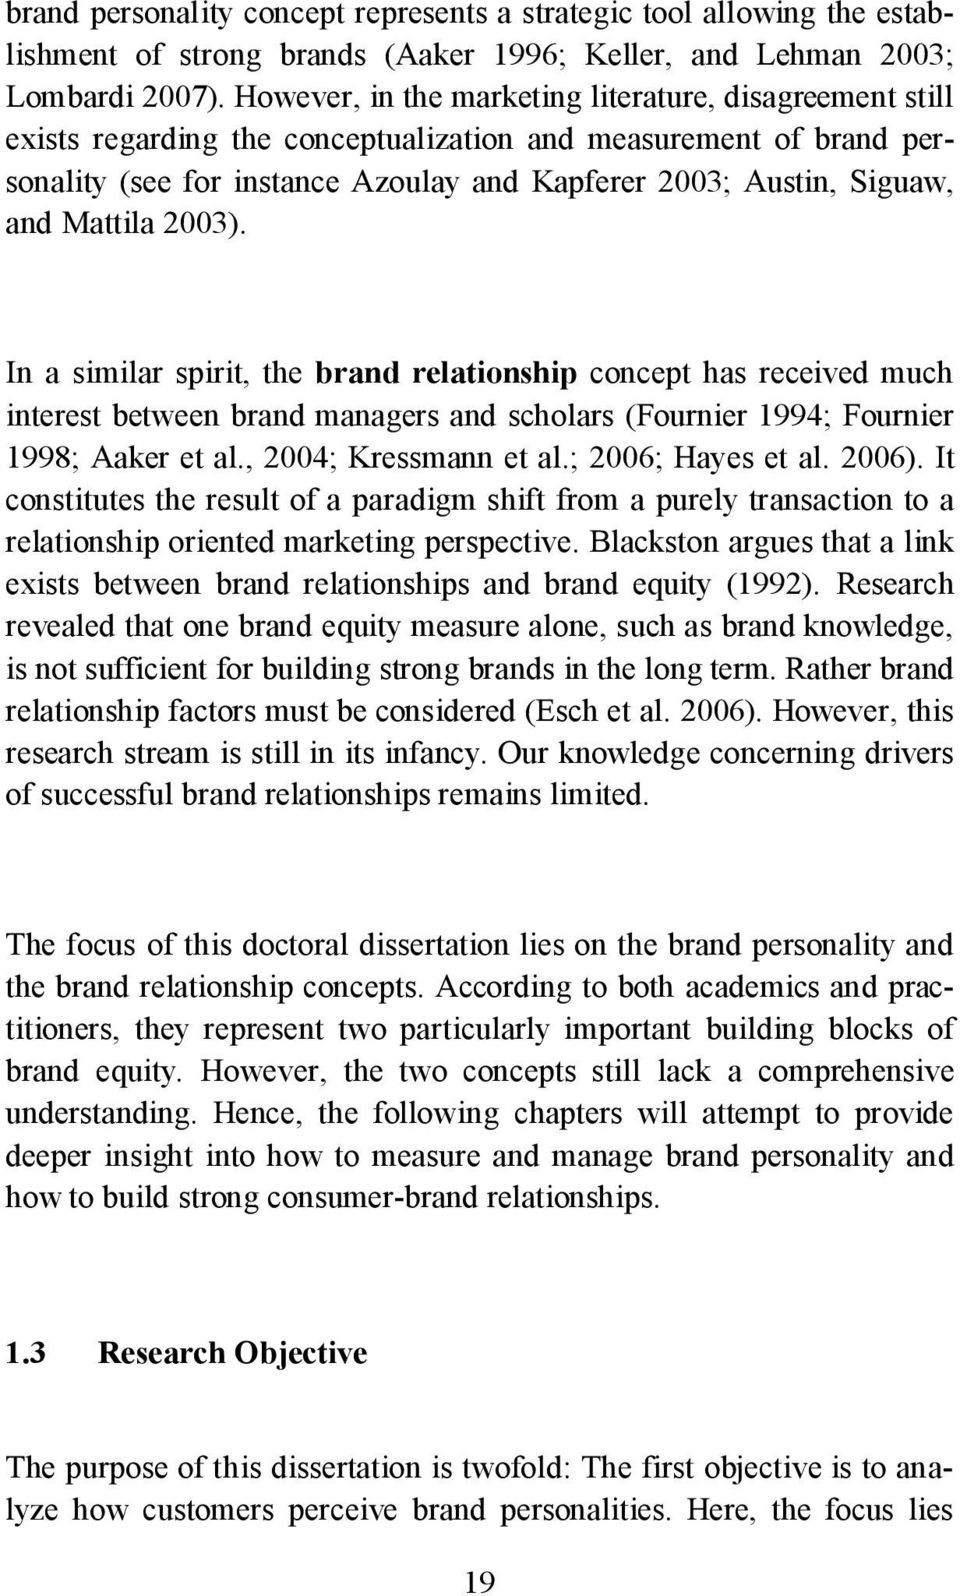 Mattila 2003). In a similar spirit, the brand relationship concept has received much interest between brand managers and scholars (Fournier 1994; Fournier 1998; Aaker et al., 2004; Kressmann et al.